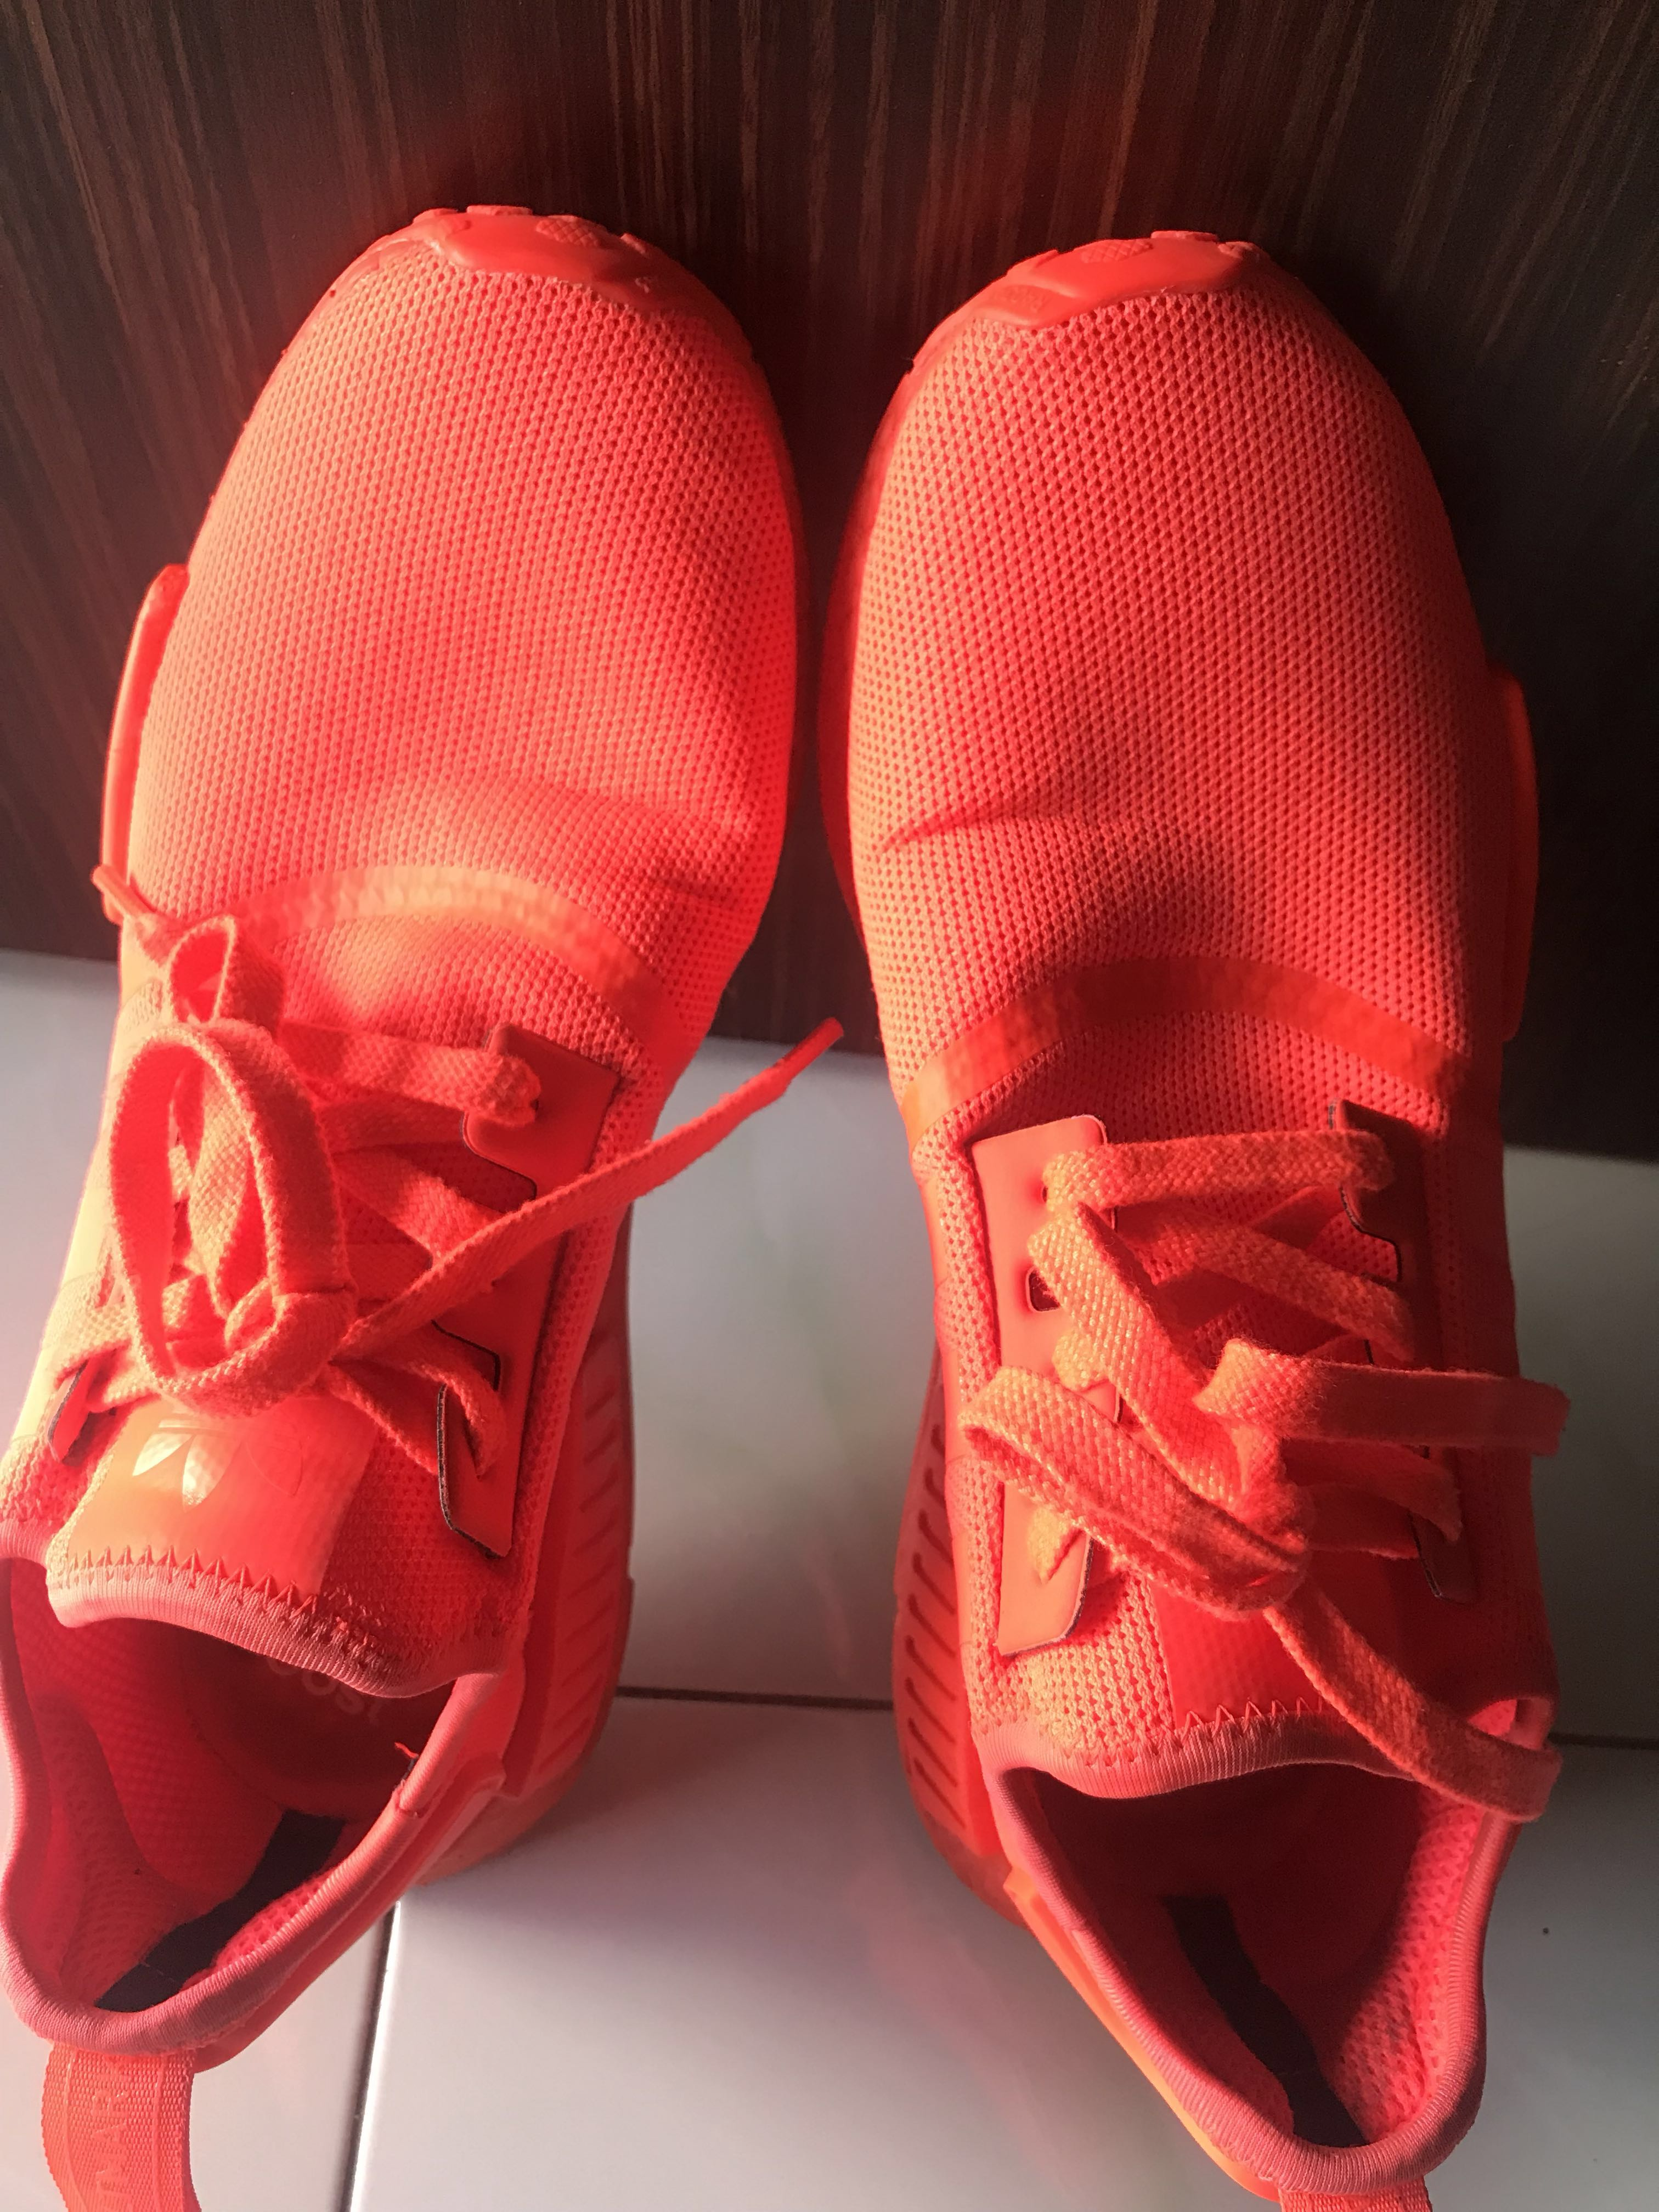 newest 5a891 77768 Adidas NMD R1 Triple Red